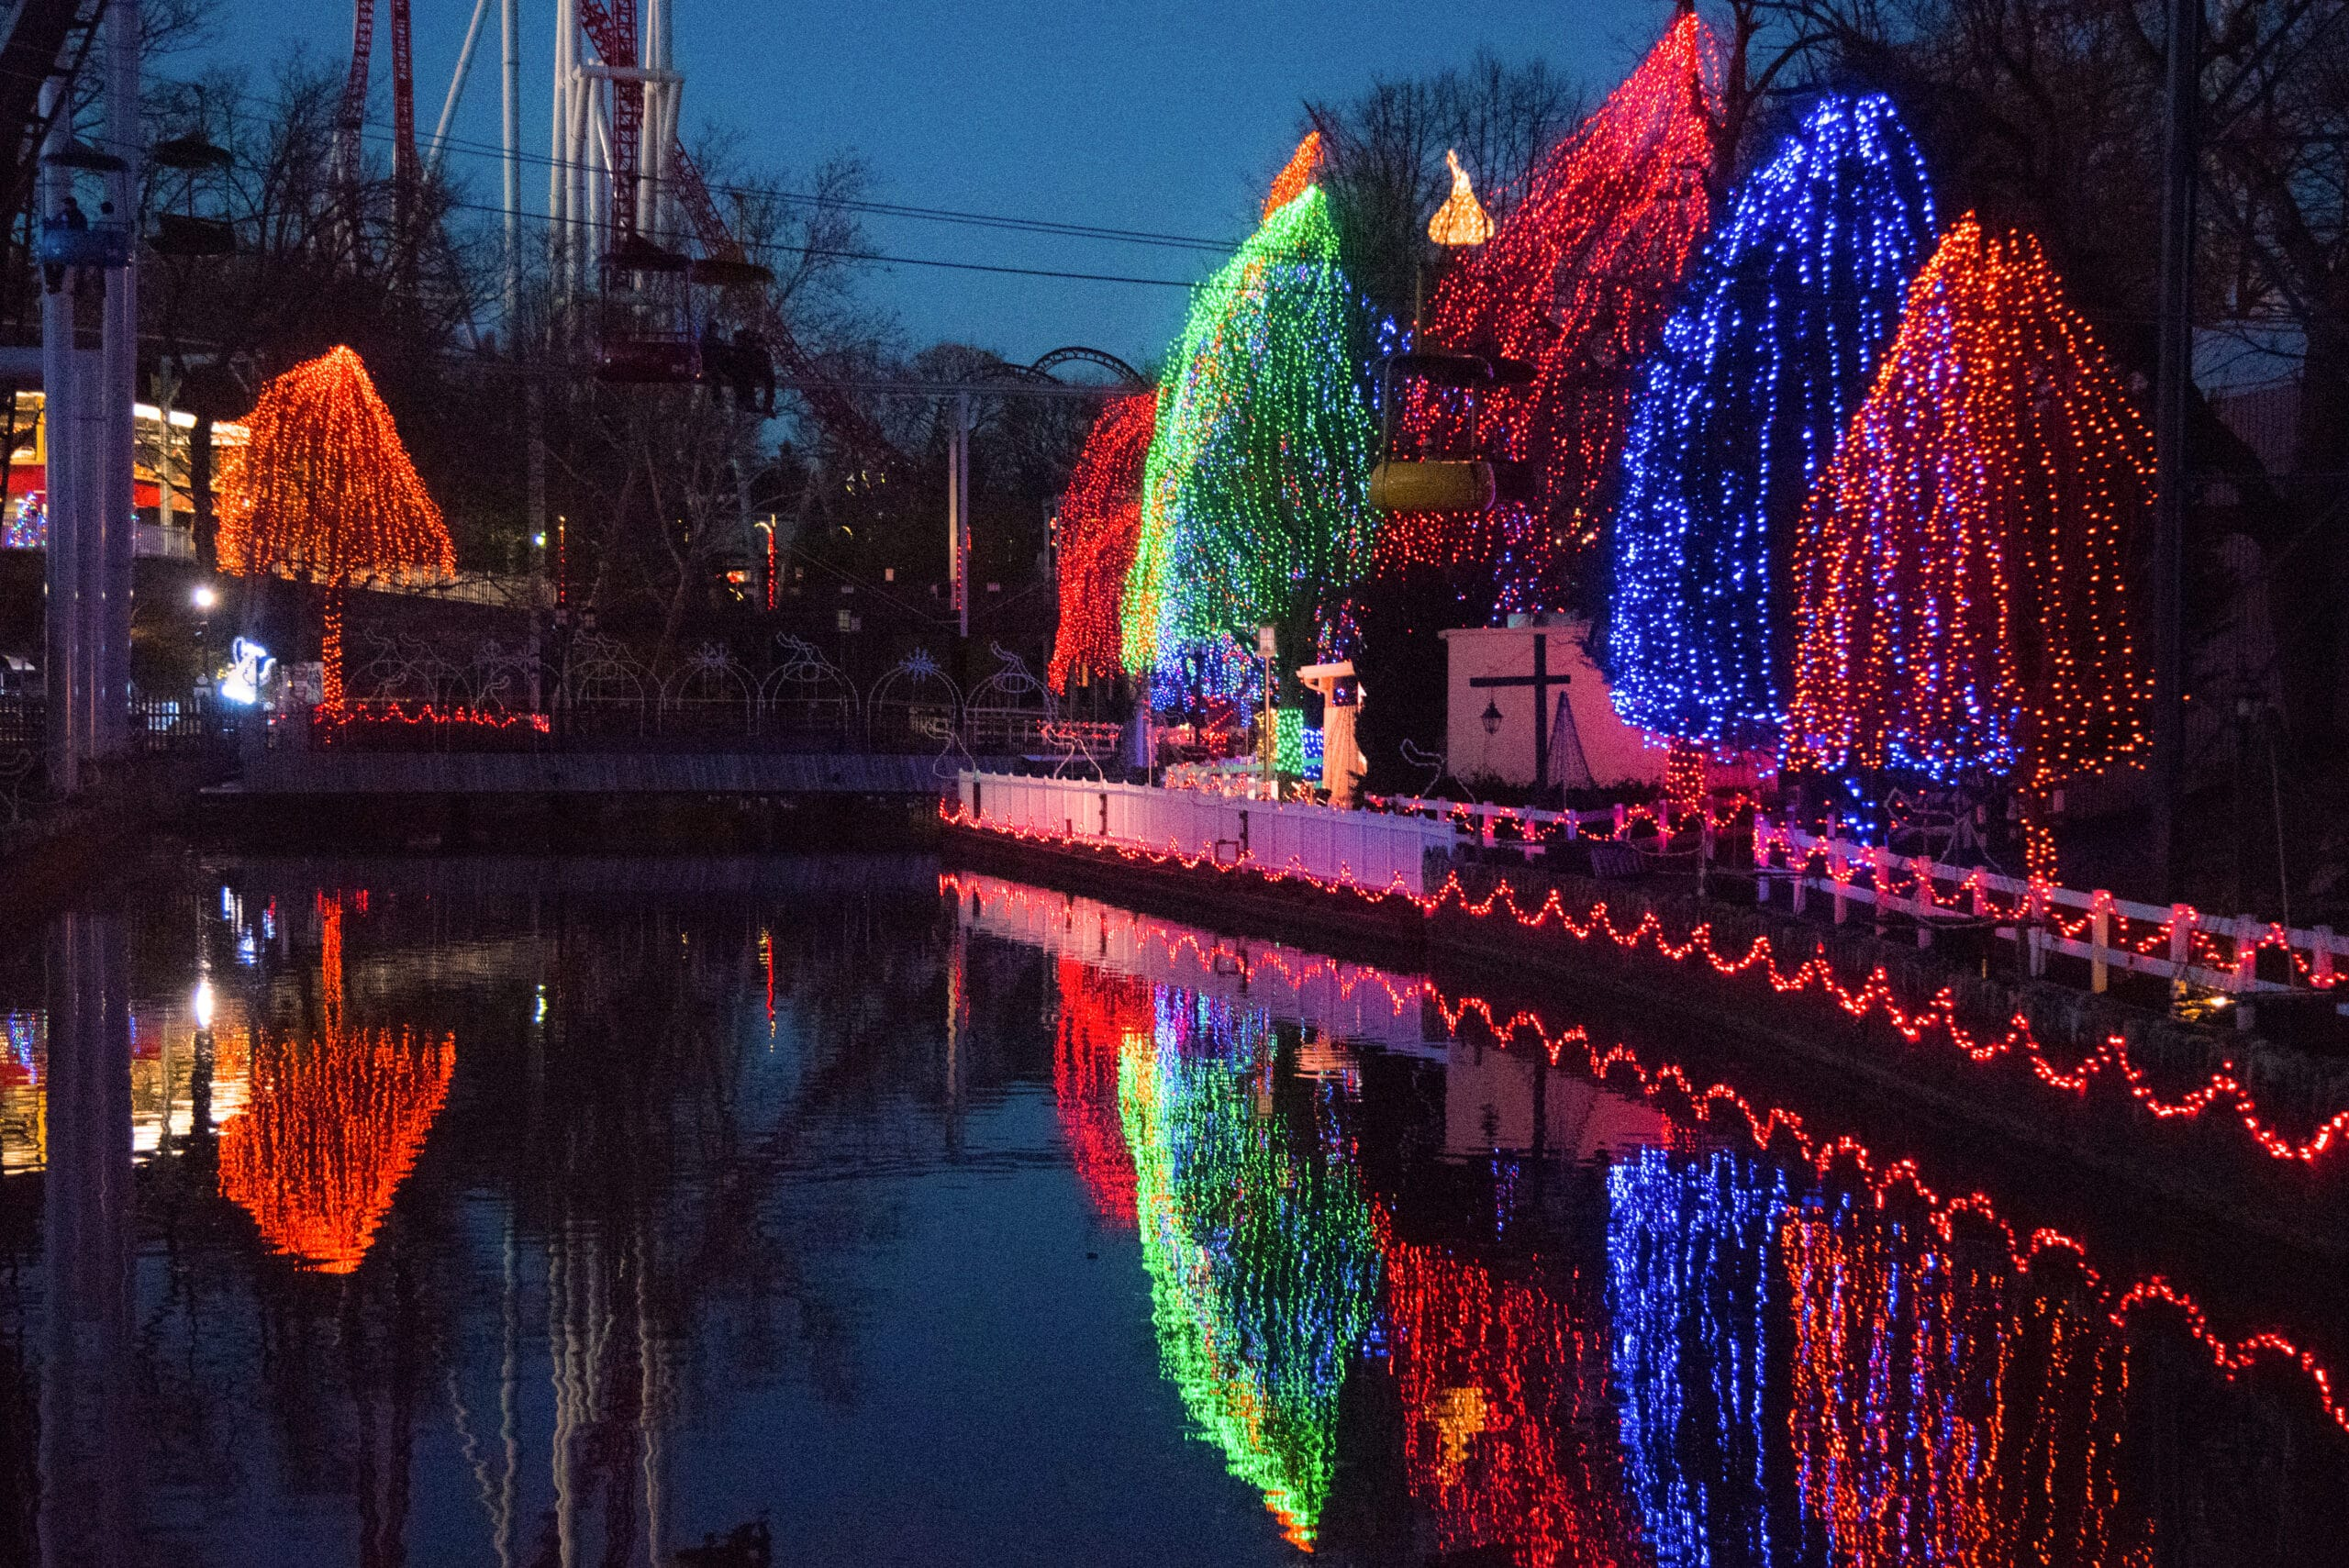 Hershey Park Christmas.12 Things To Do In Hershey Pa During Christmas Time Jays